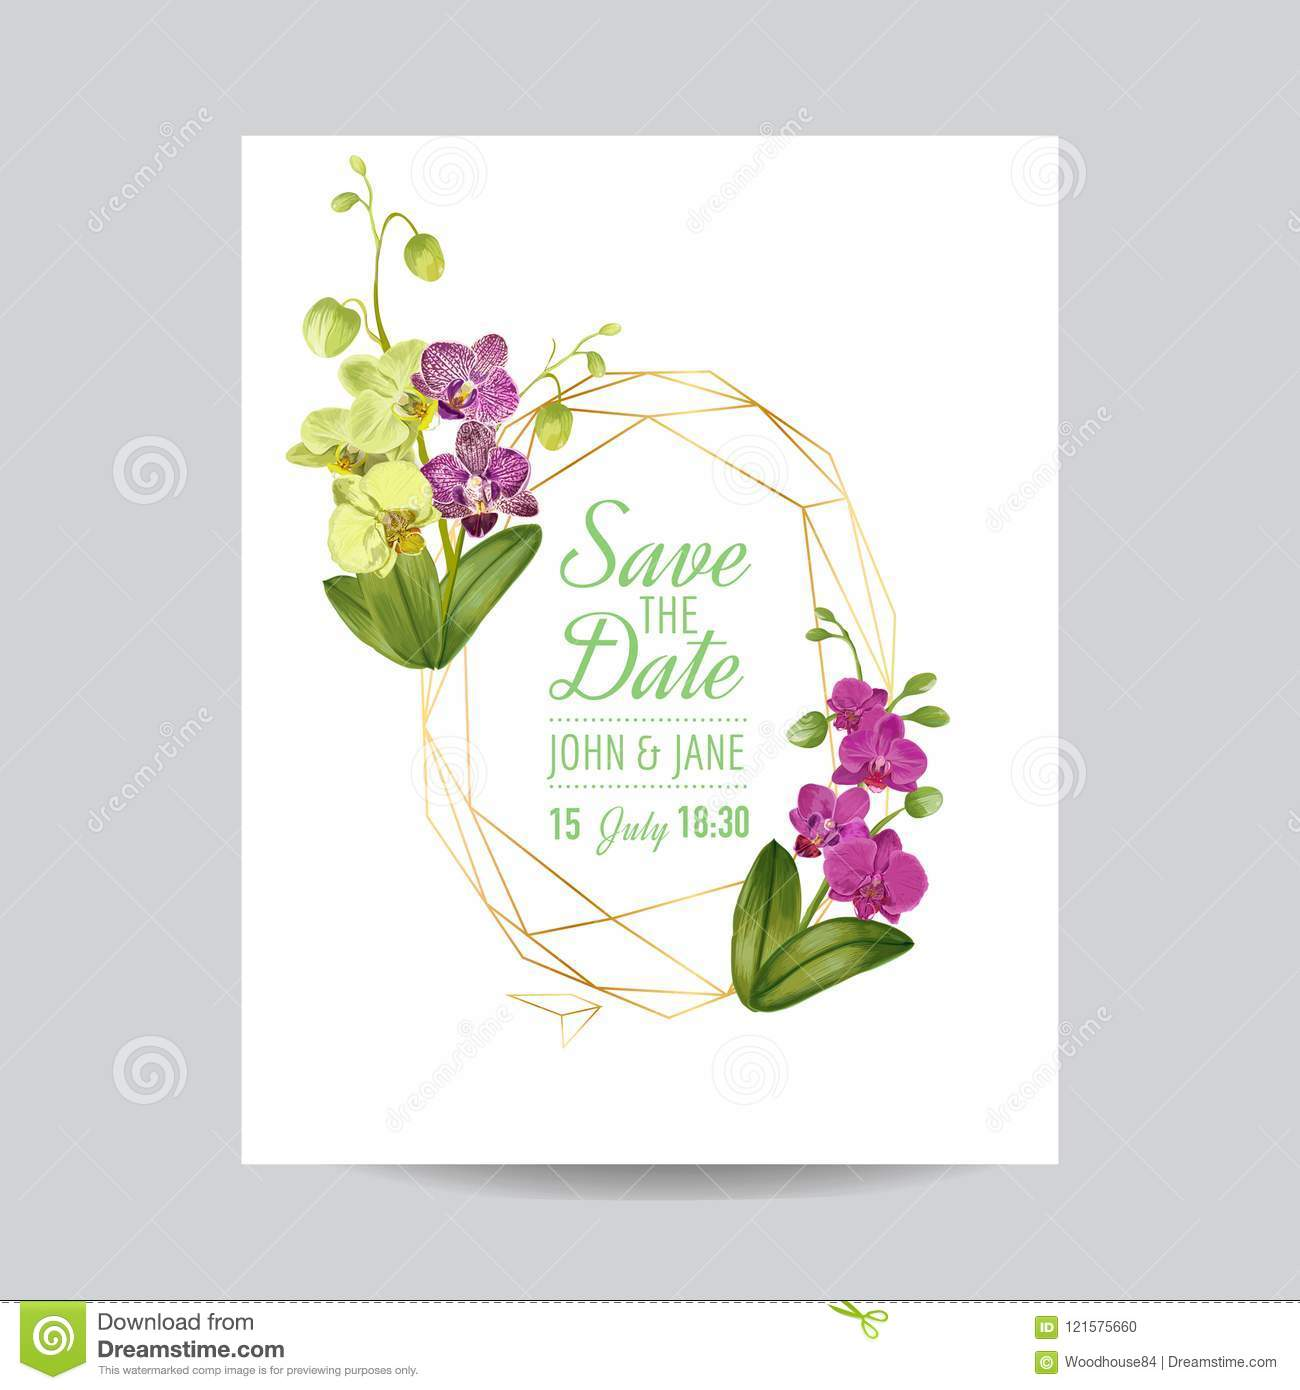 Wedding Invitation Layout Template With Orchid Flowers. Save The ...